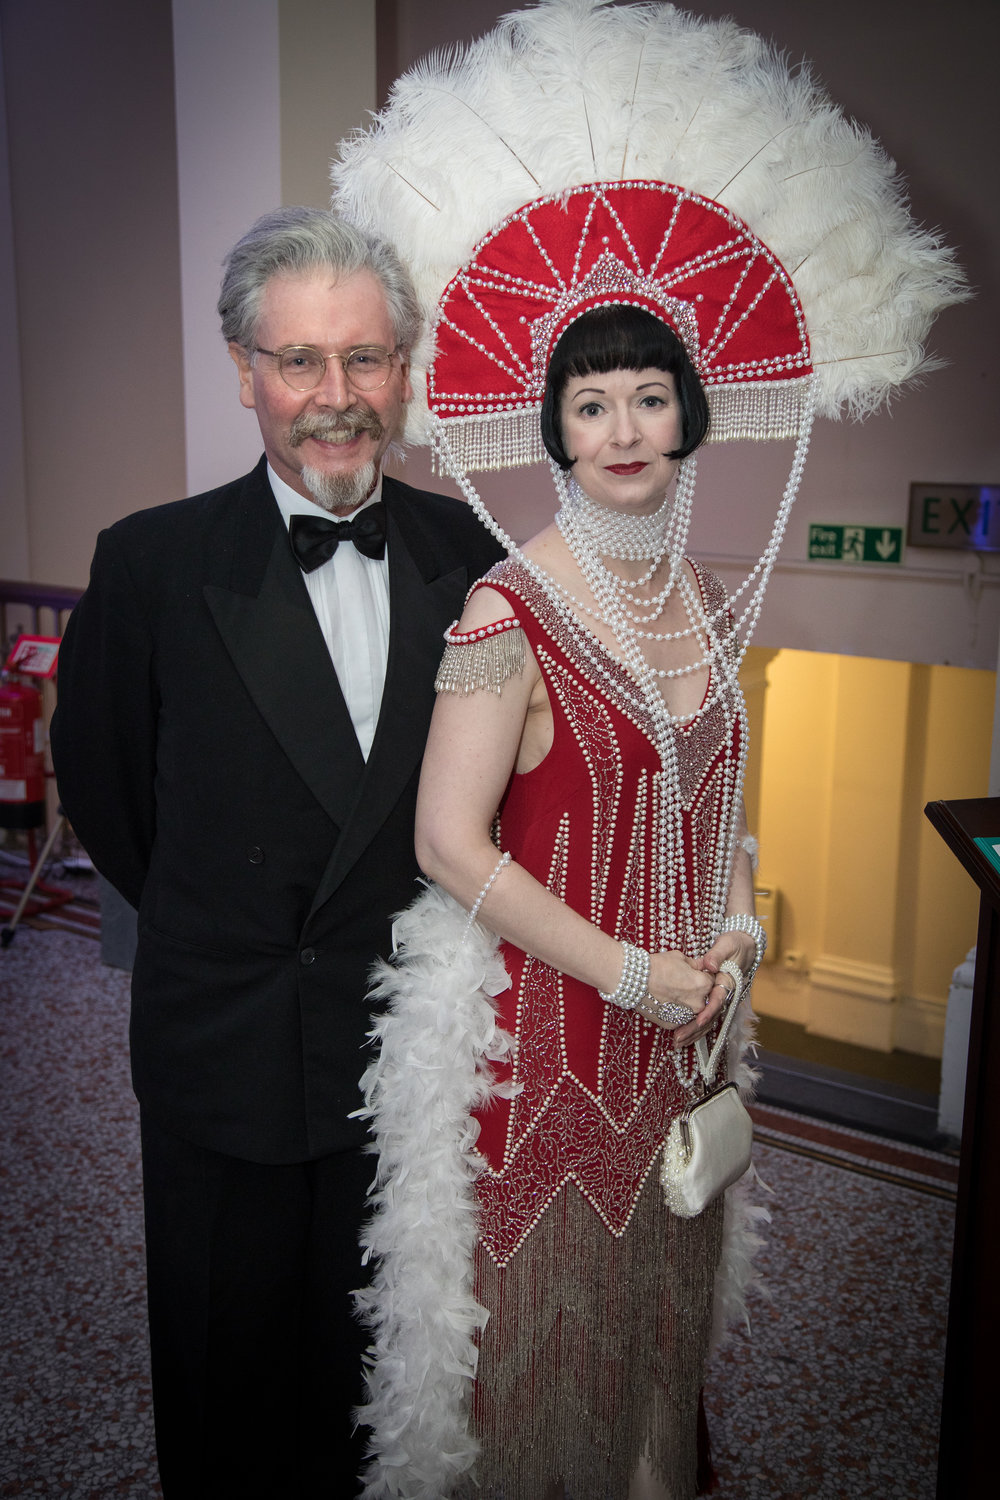 Couple in Art Deco costume